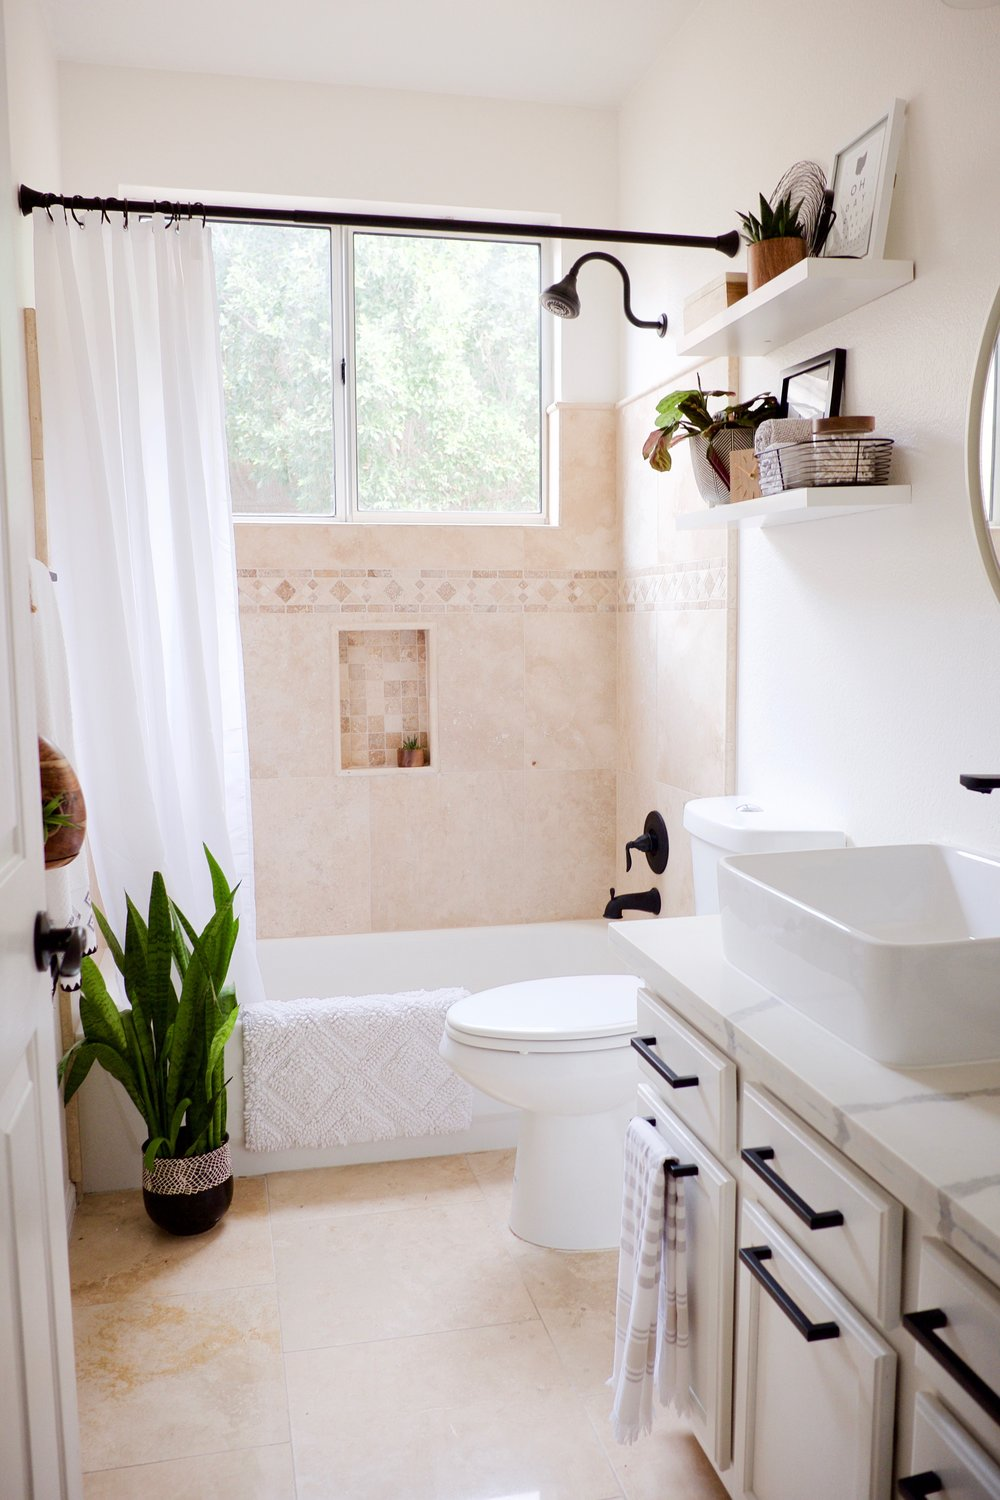 Travertine bathroom gets a facelift